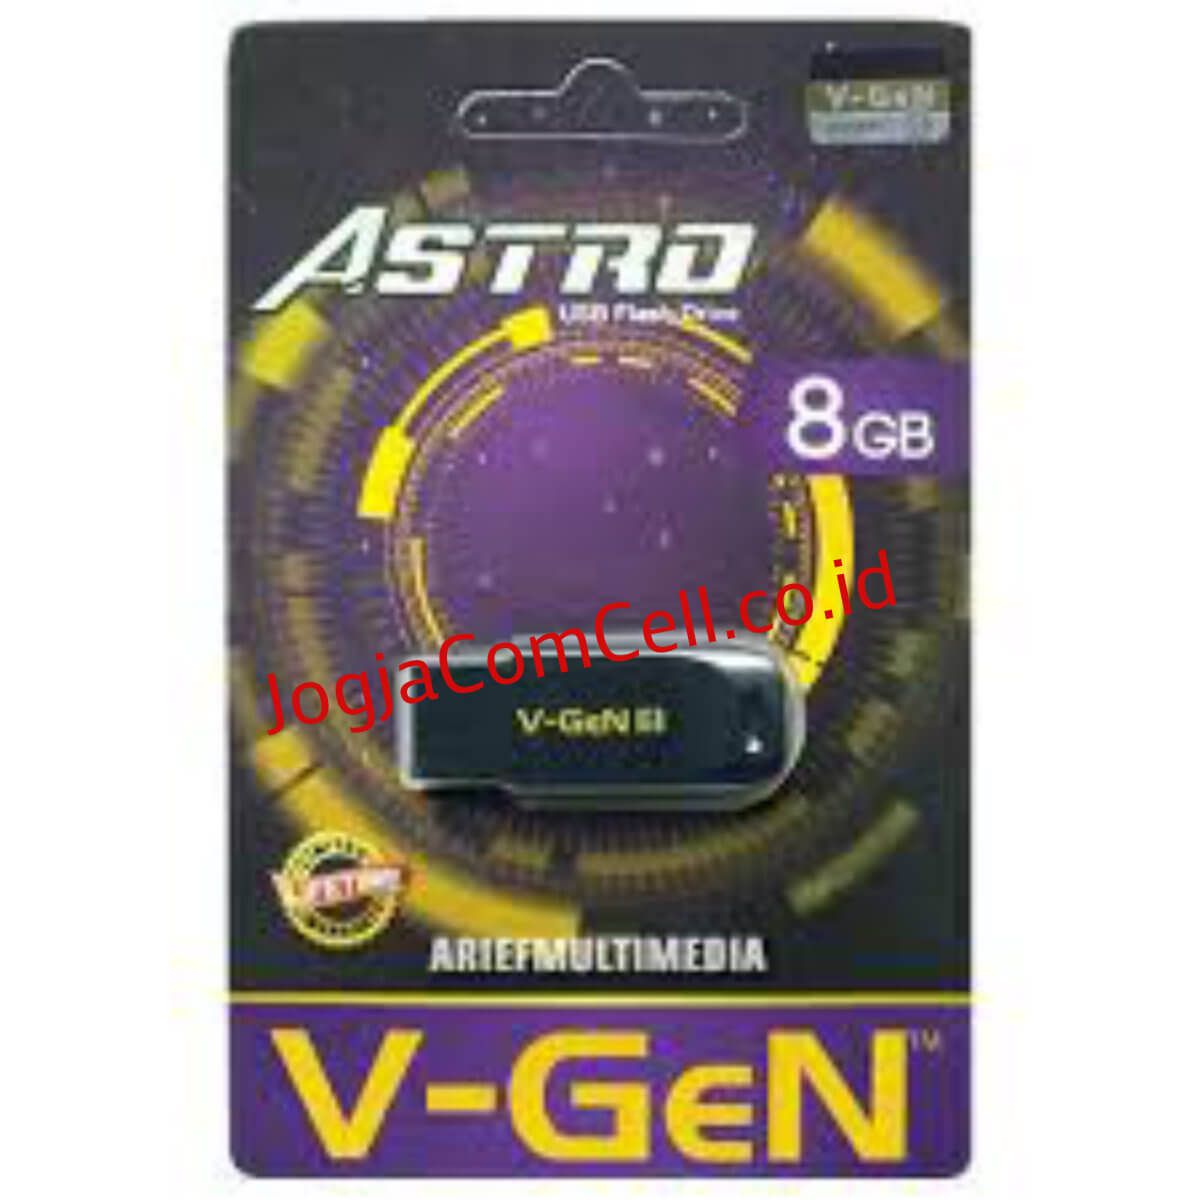 FLASHDISK V-GEN 8GB